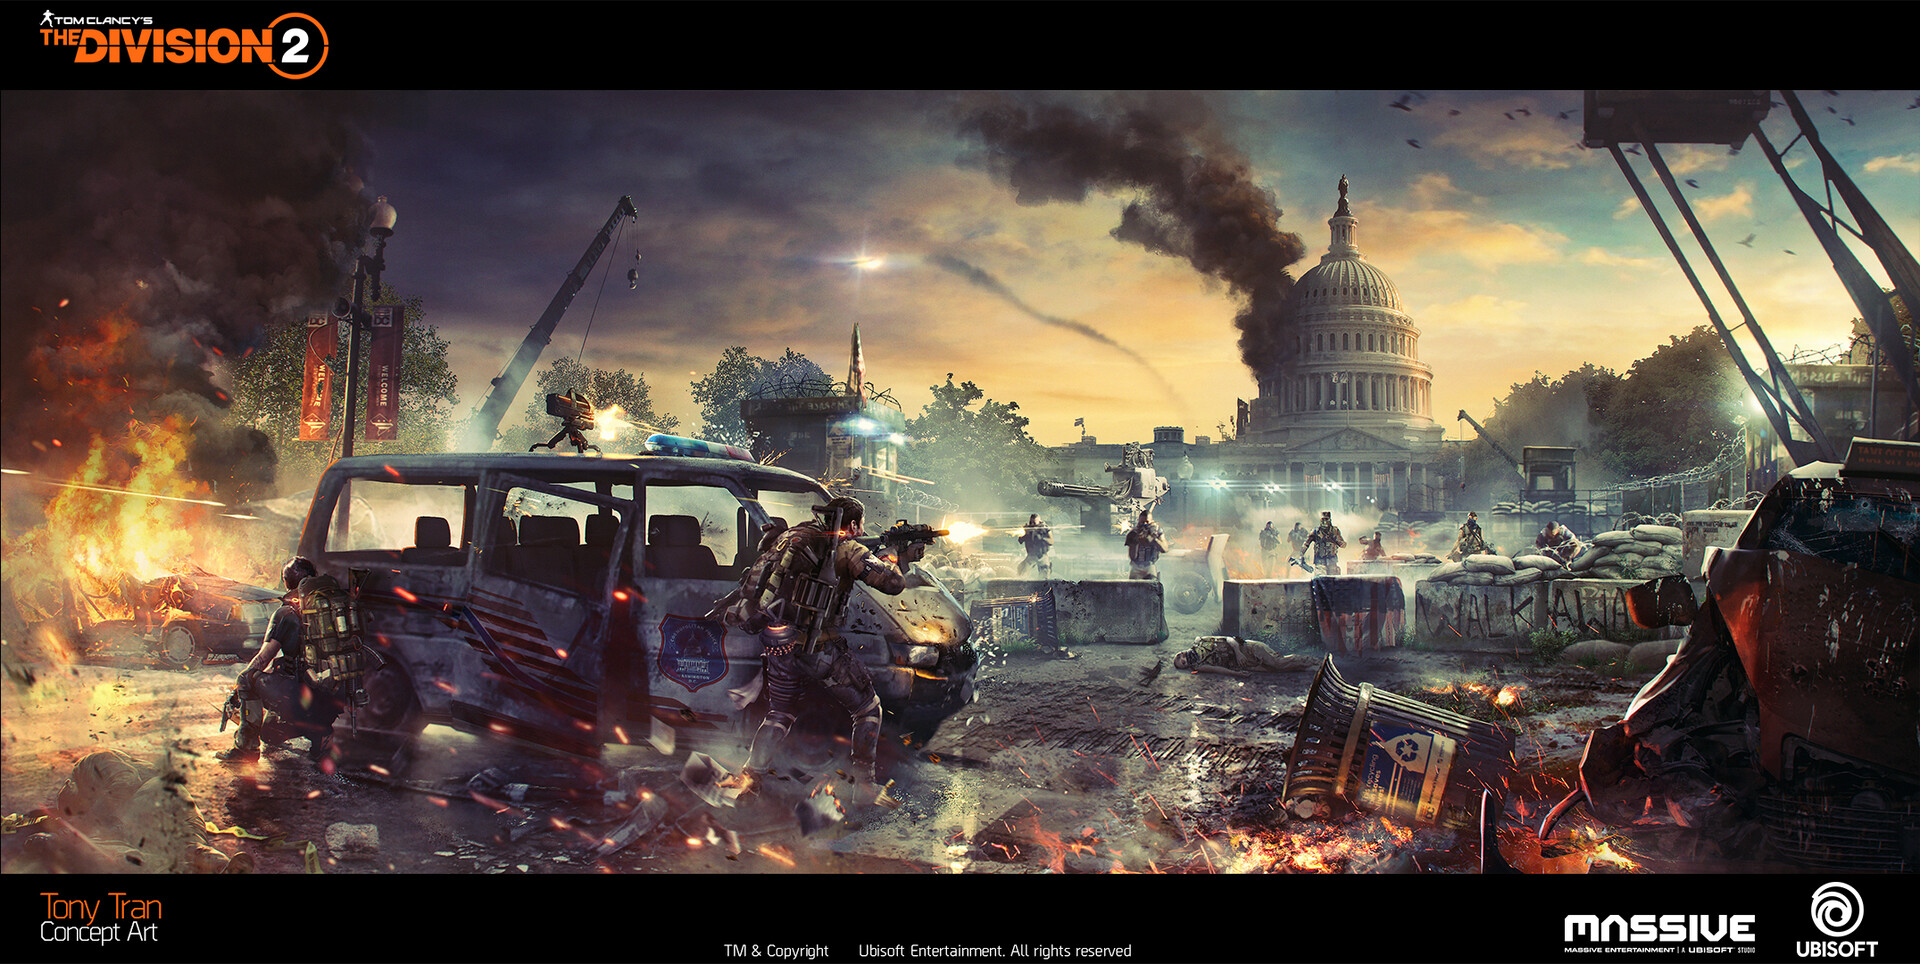 The Division 2 25 Concept Art By Tony Tran